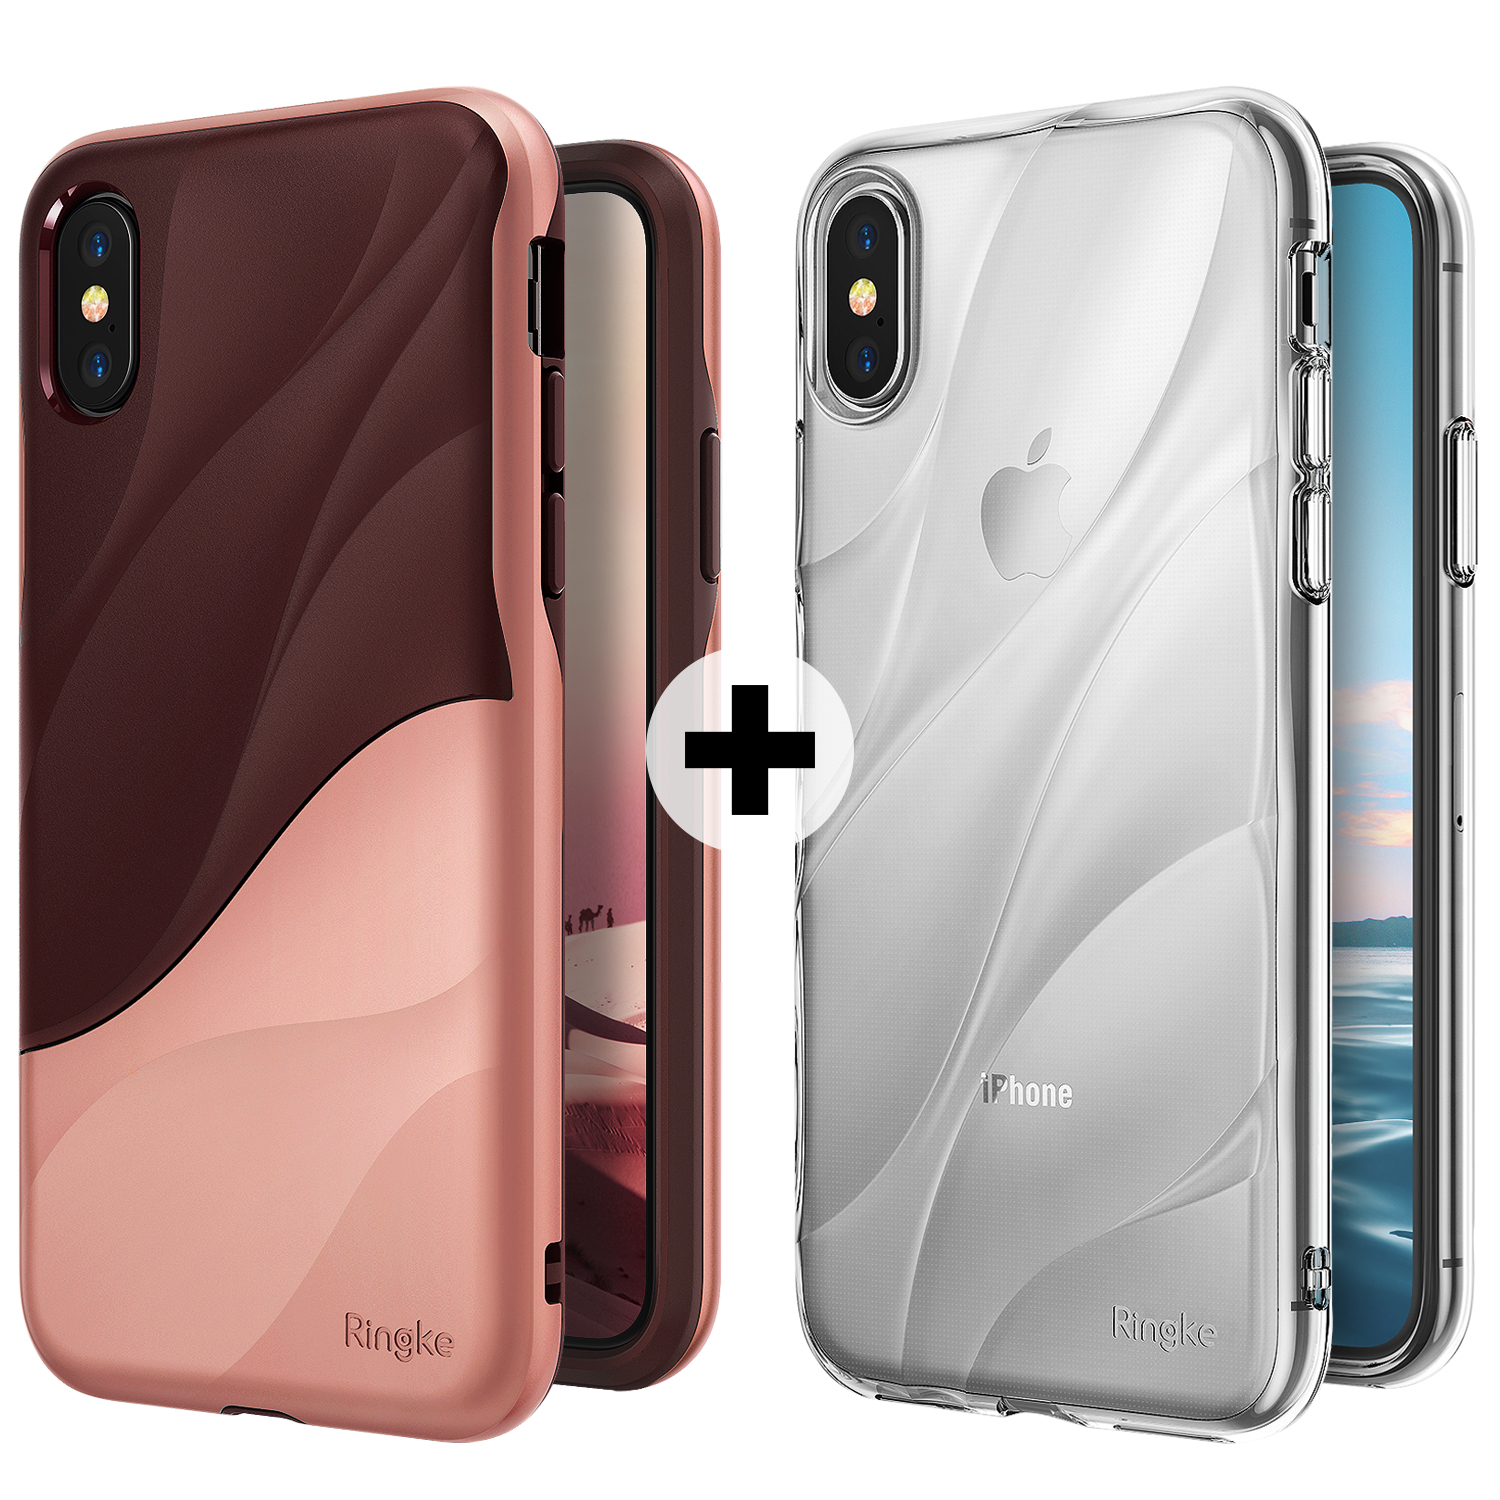 Apple iPhone X Phone Case, iPhone 10 Case, Ringke [WAVE] Dual Layer Heavy Duty PC TPU Drop Resistant Protection Cover + [Flow] Minimalist Wavy Textured Shock Absorption TPU Lightweight